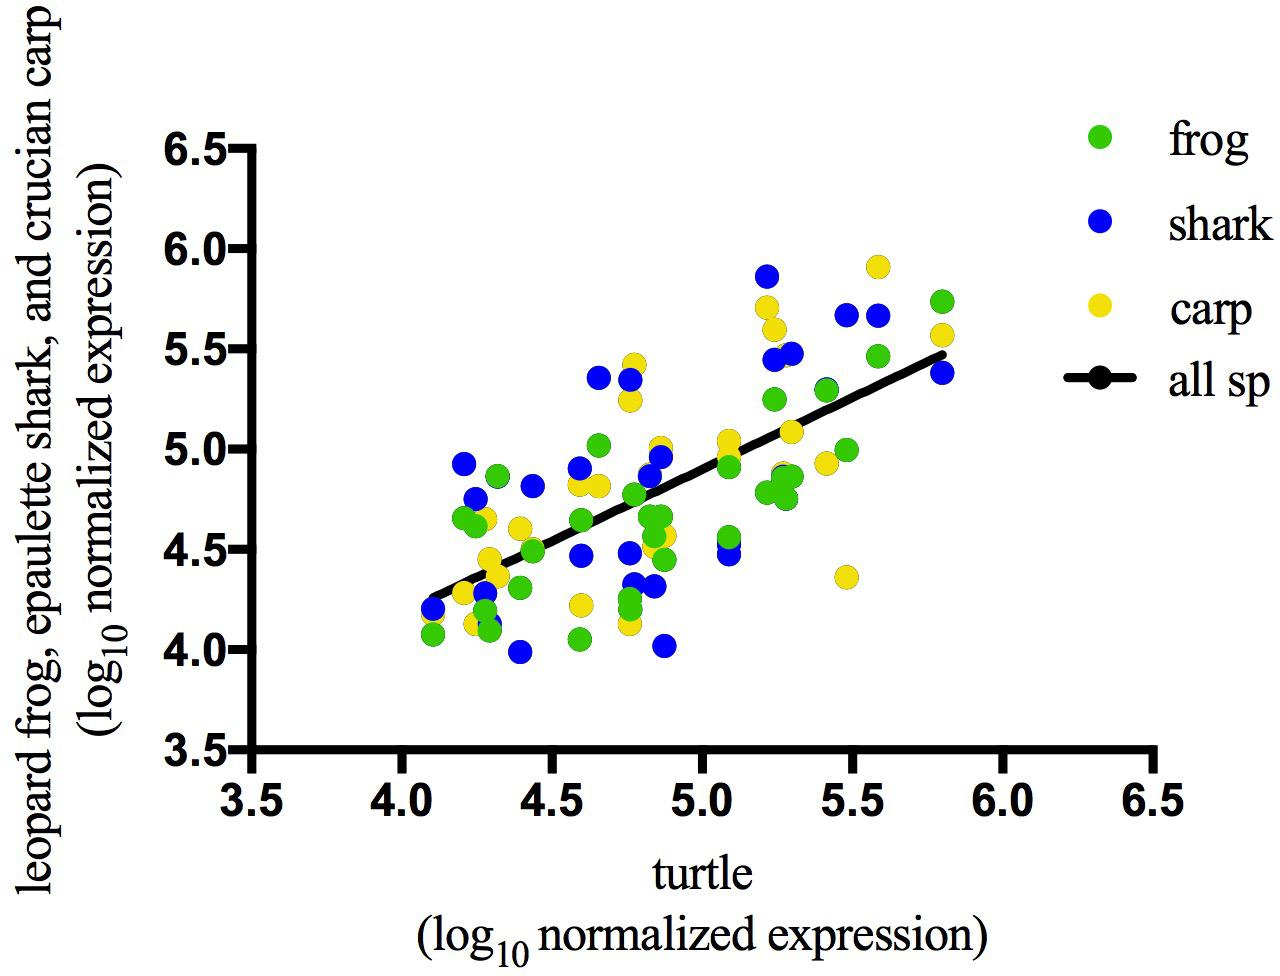 anoxia tolerance Coping with anoxia are also important in freeze toler- ance, we examined the association between capacities for freezing survival and anoxia tolerance in hatchlings of.